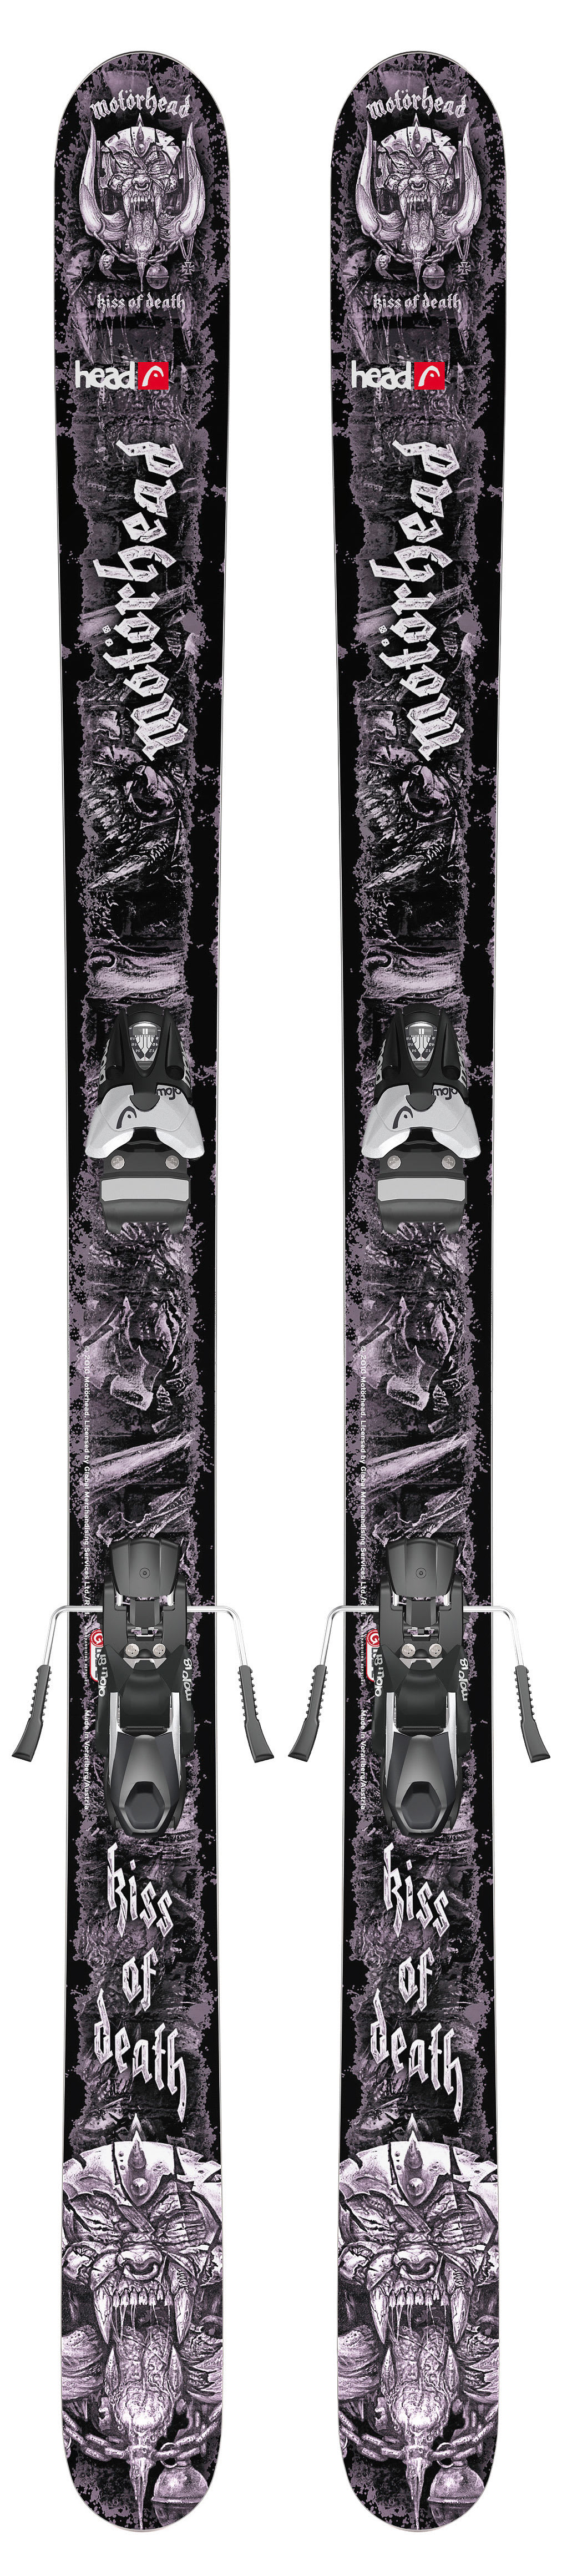 Head Kiss Of Death 110 Skis w/ Mojo 12 Bindings Matte Black/Silver 115mm - Men's